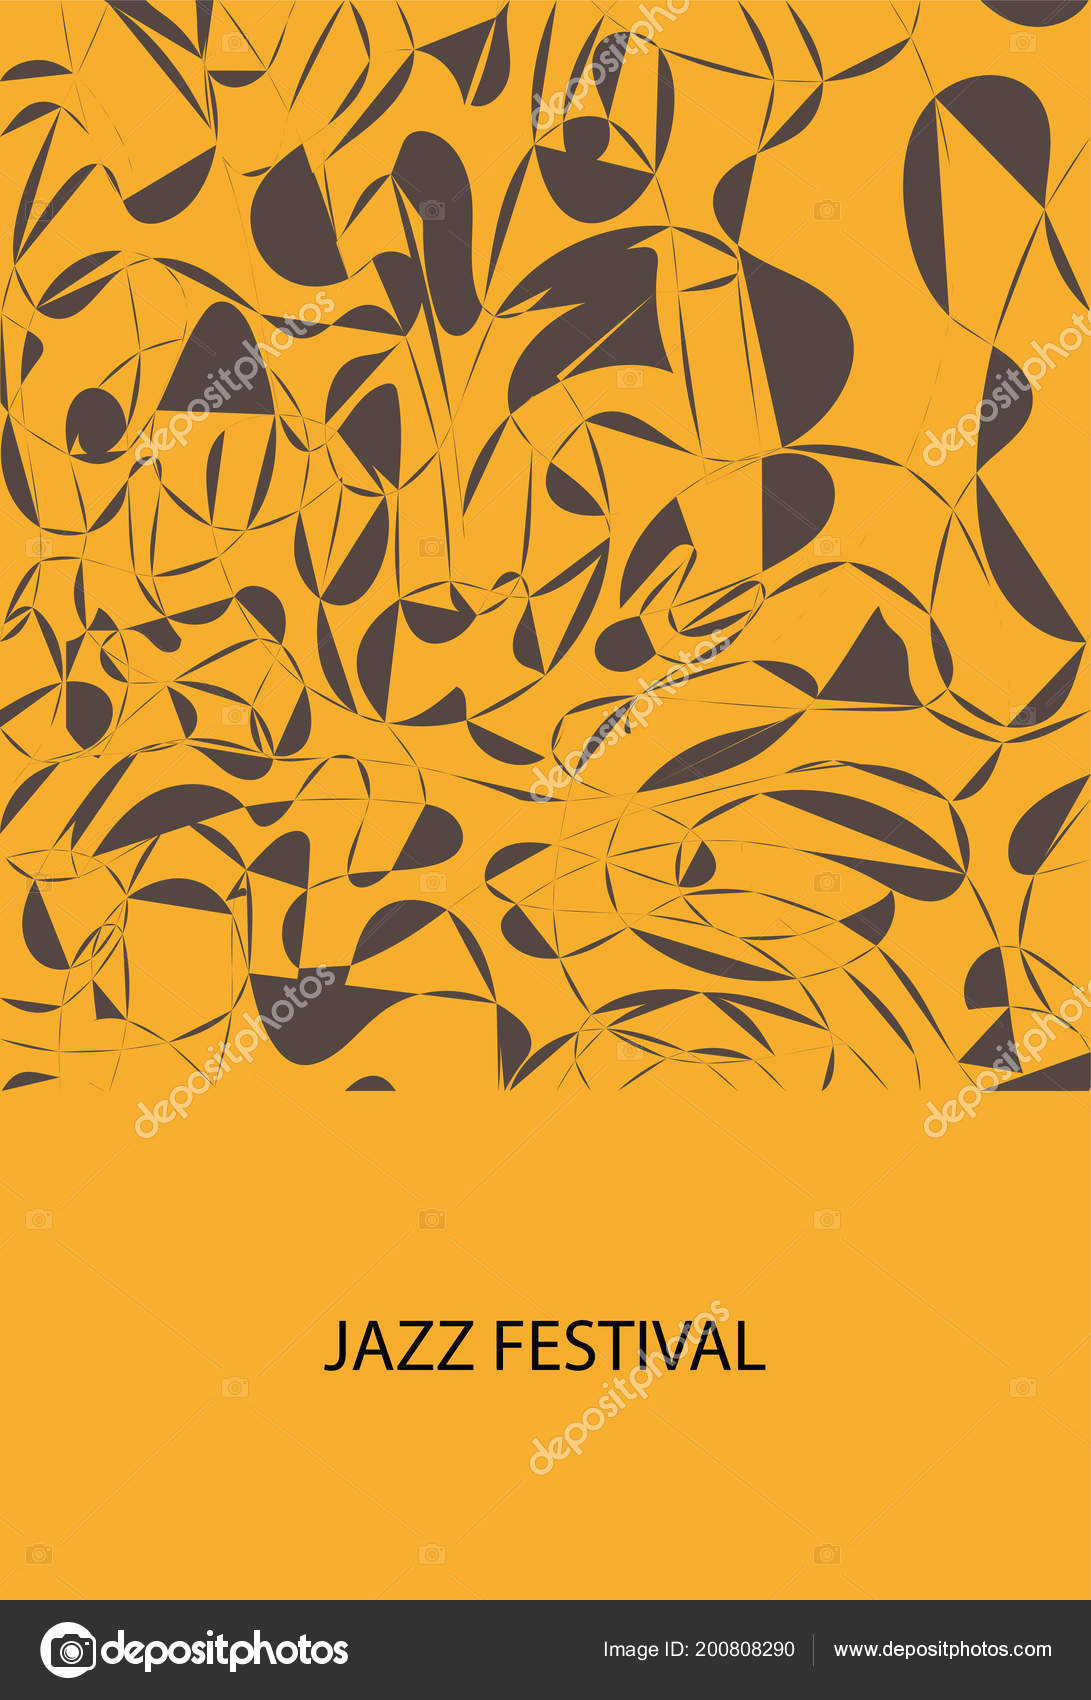 Invitation jazz festival design flayer ticket vetores de stock invitation jazz festival design flayer ticket vetores de stock stopboris Image collections